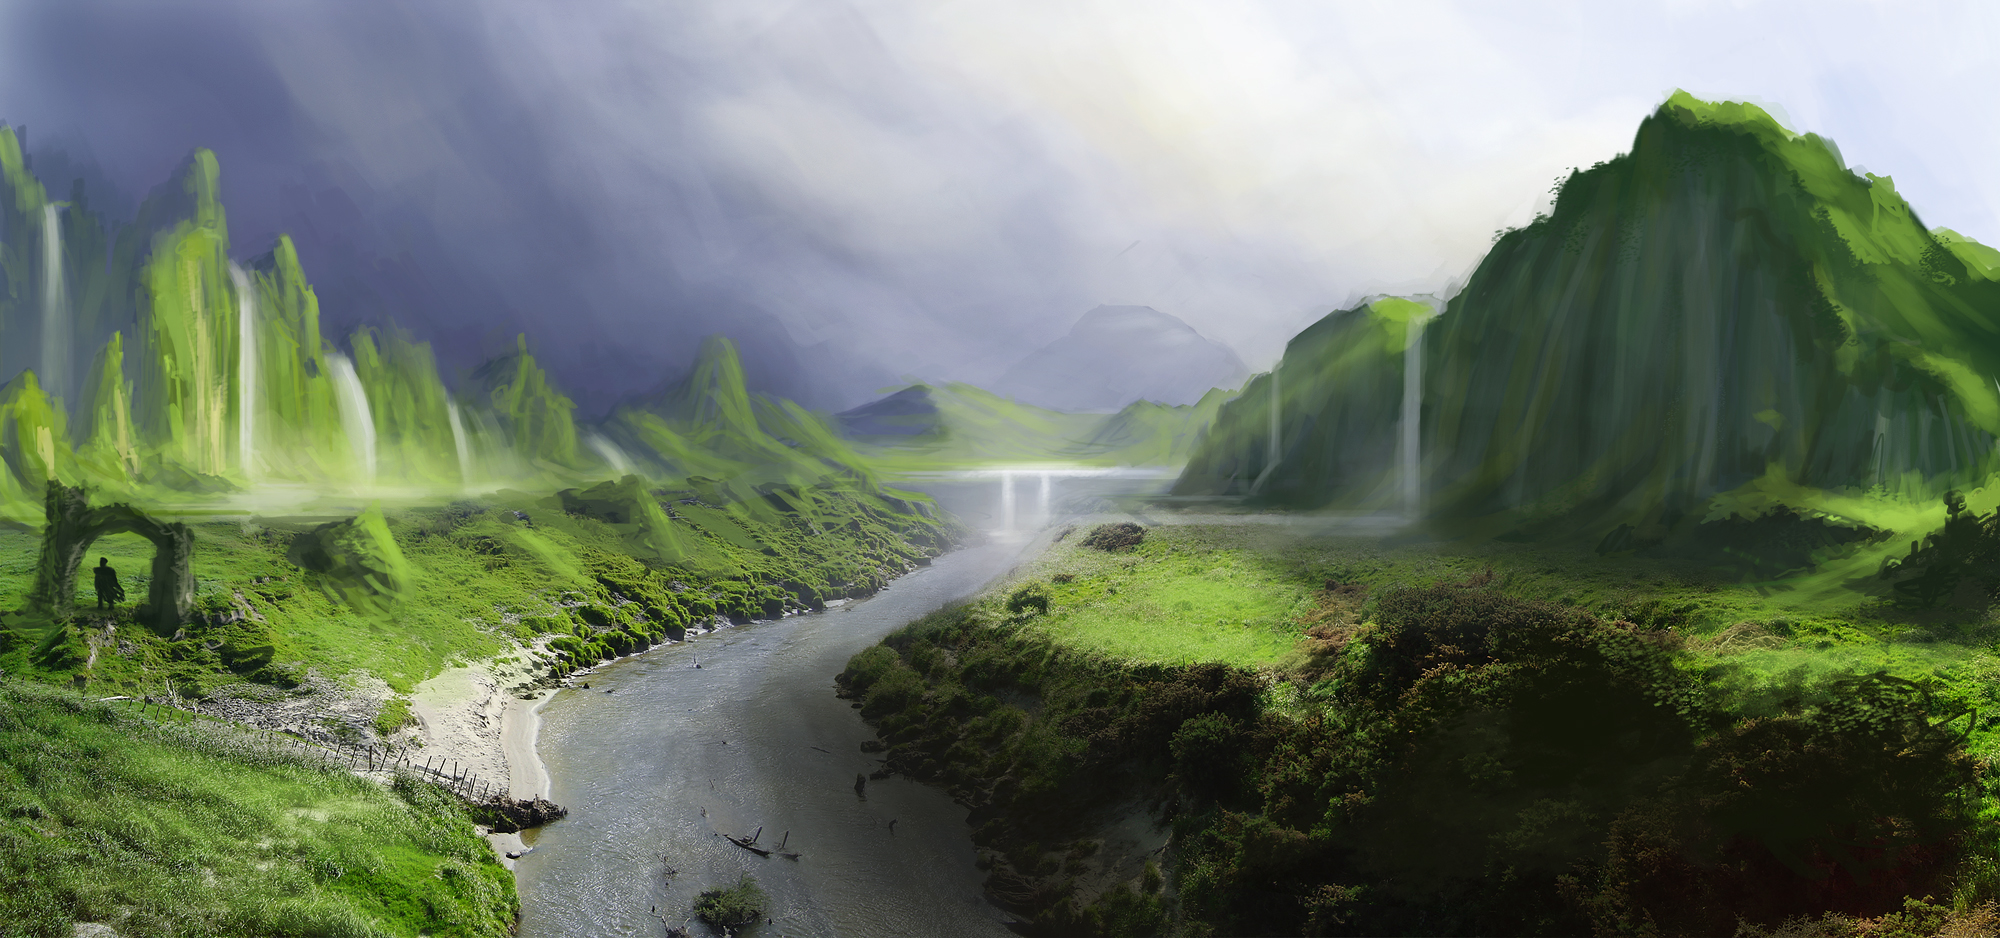 Download matte painting wallpaper gallery for Matte painting